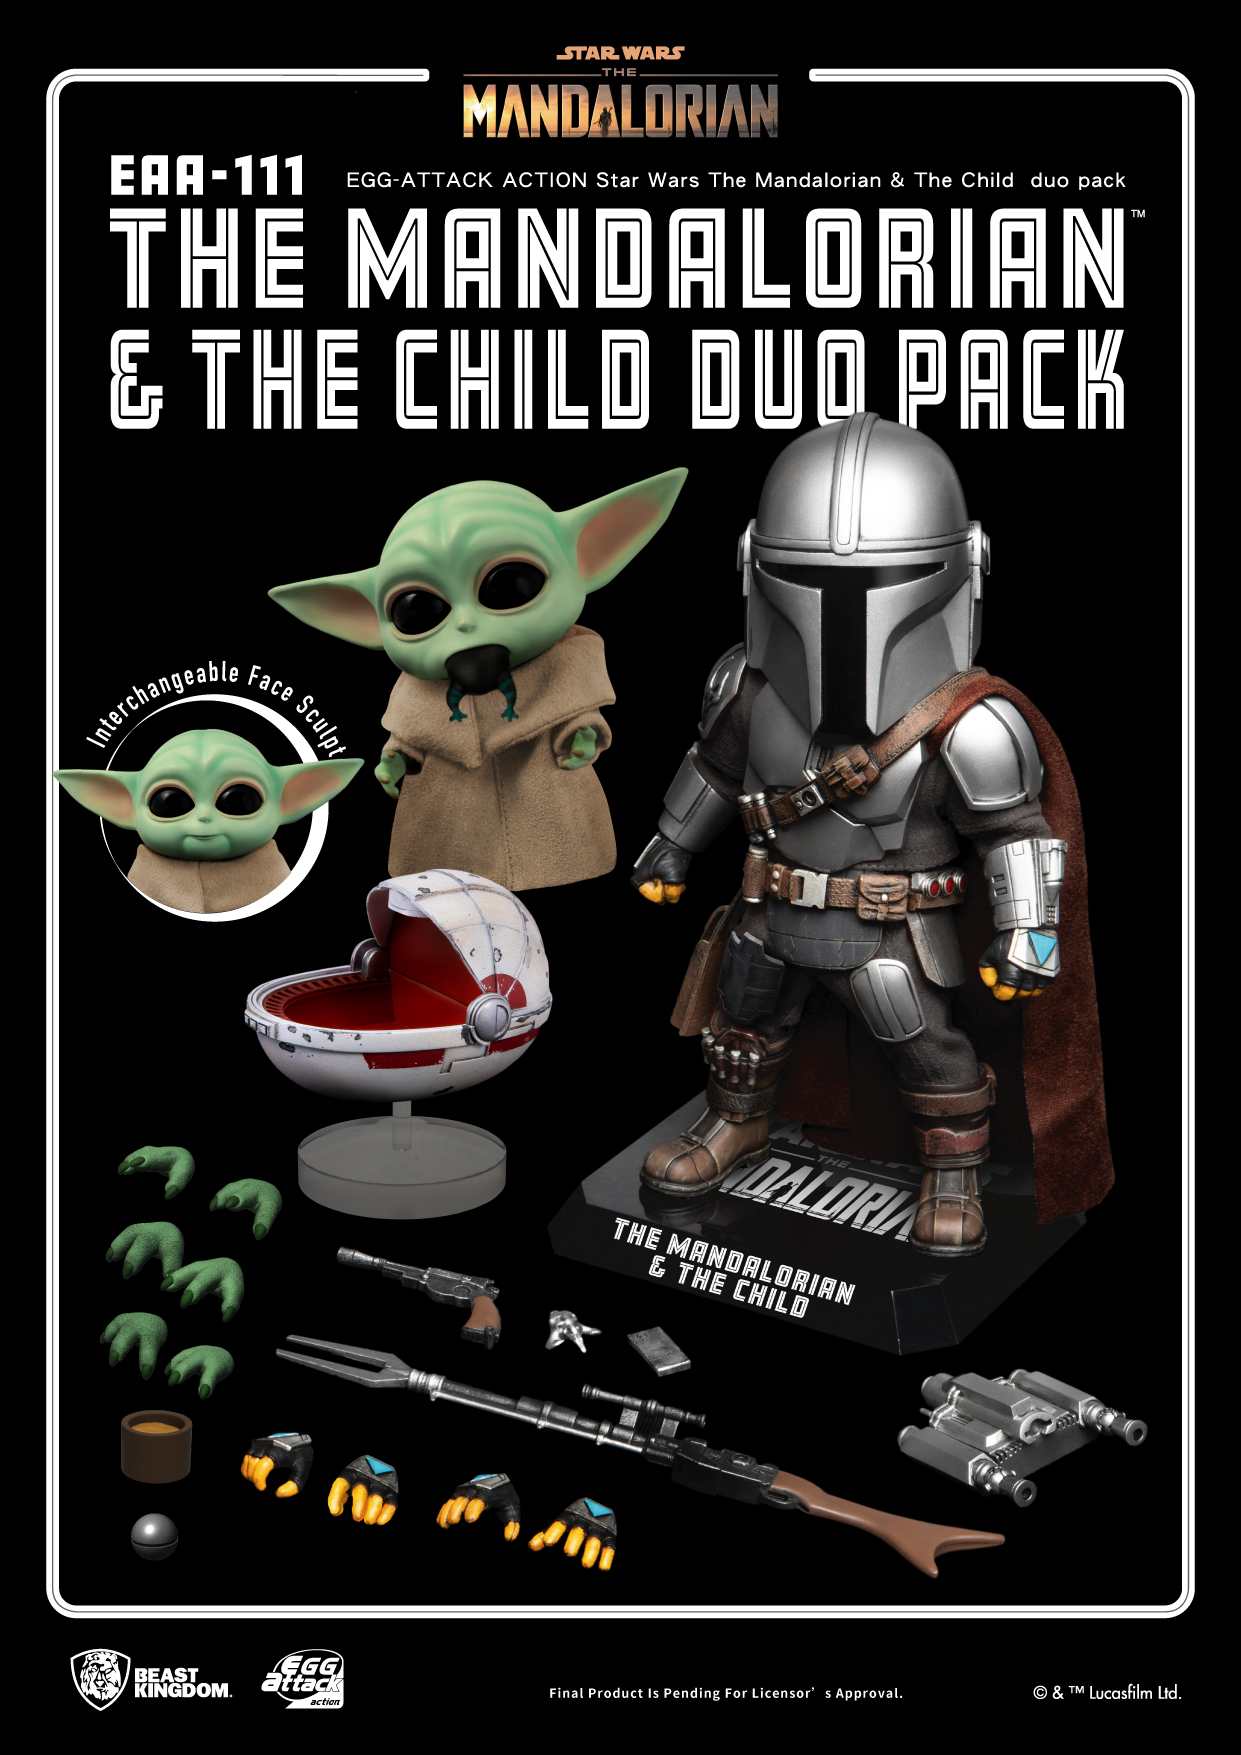 Star Wars The Mandalorian - Mandalorian & The Child Duo Action Figure Set (EAA-111)